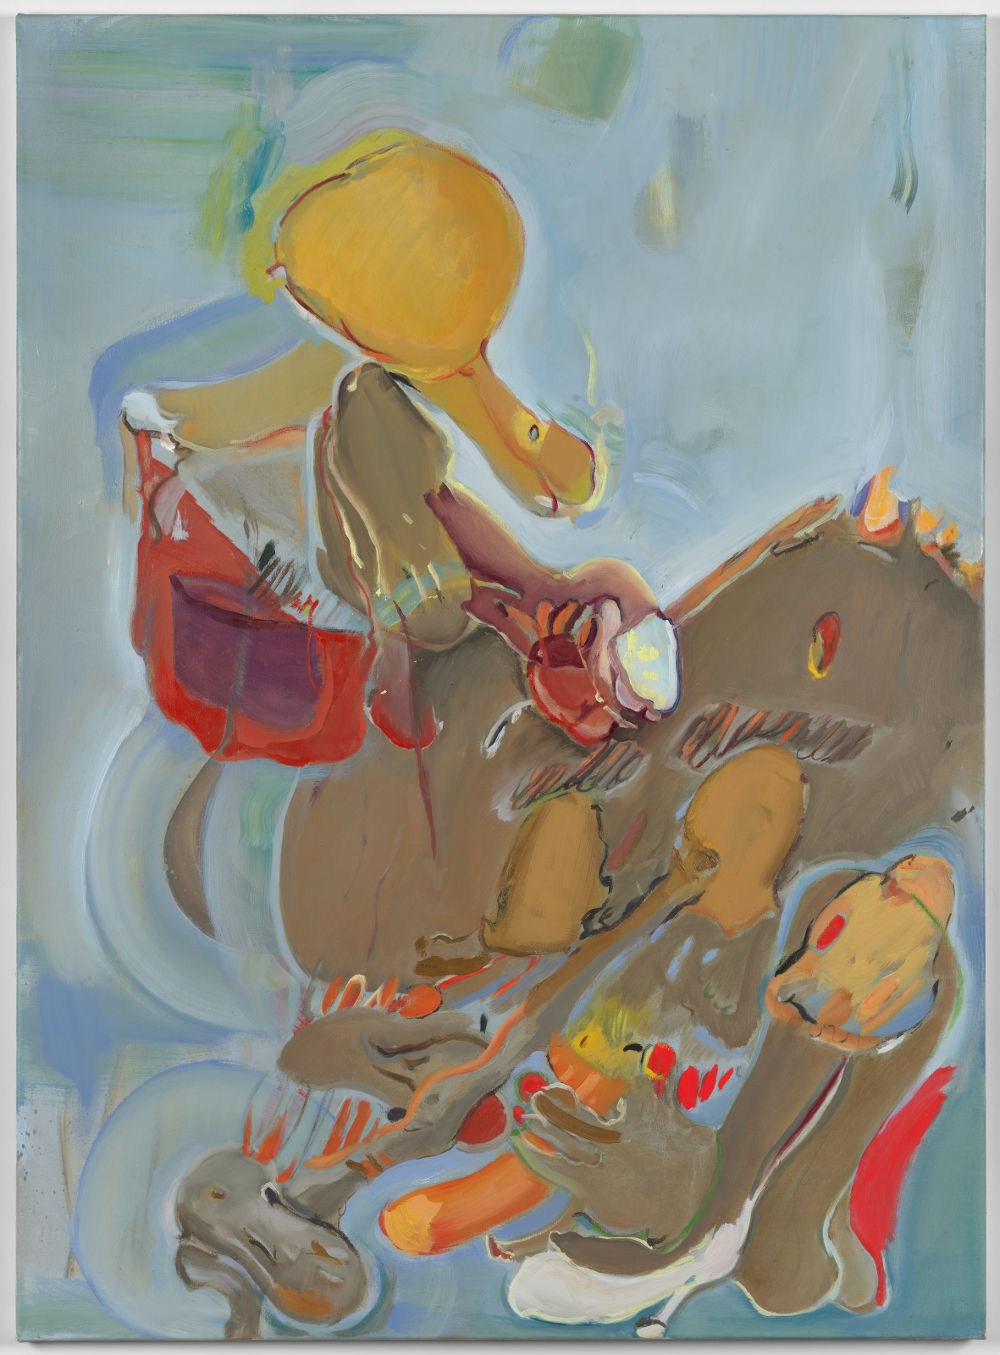 Stefanie Heinze, When Ripe (Super-Care), 2017, oil and acrylic on canvas, 110 x 80 cm, 43.3 x 31.5 in. Private Collection. Courtesy Pippy Houldsworth Gallery, London